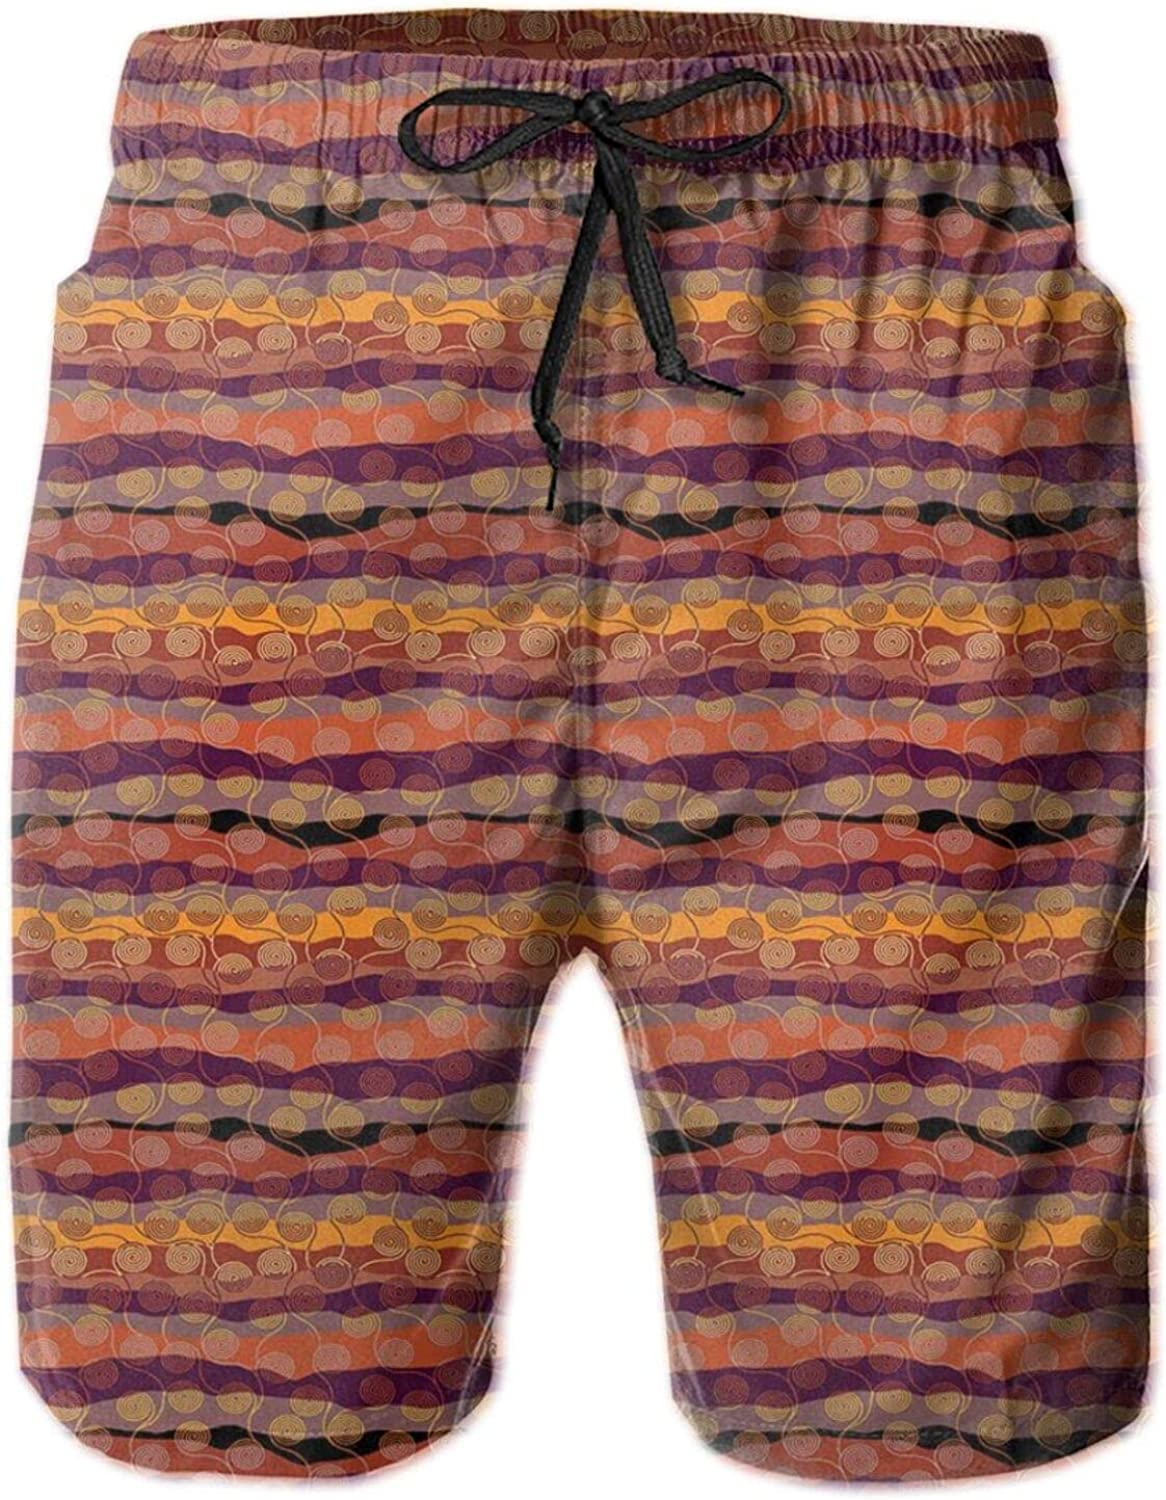 Ethnic Style Abstract Zigzag Art with Circular Patterns in Warm Tones Illustration Mens Swim Trucks Shorts with Mesh Lining,M